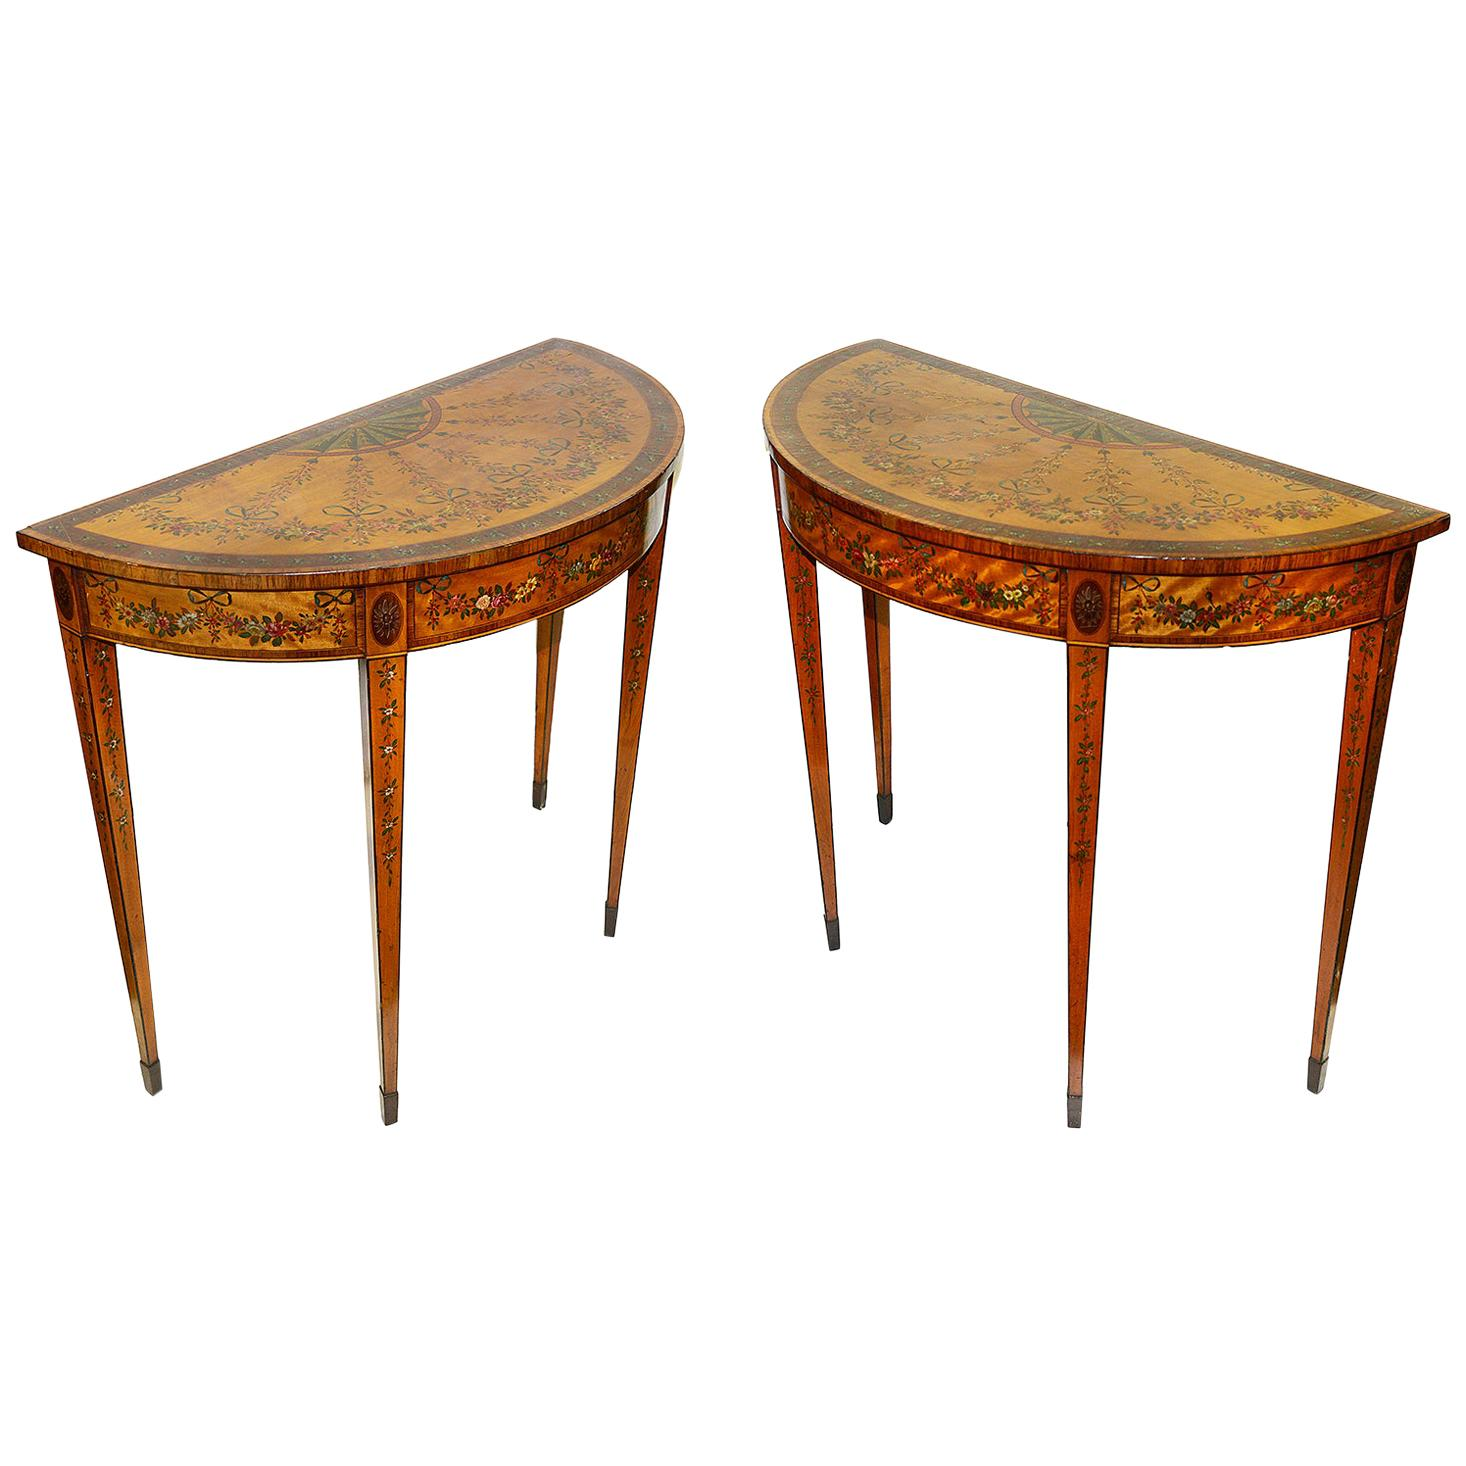 Pair 18th Century Sheraton period side tables.